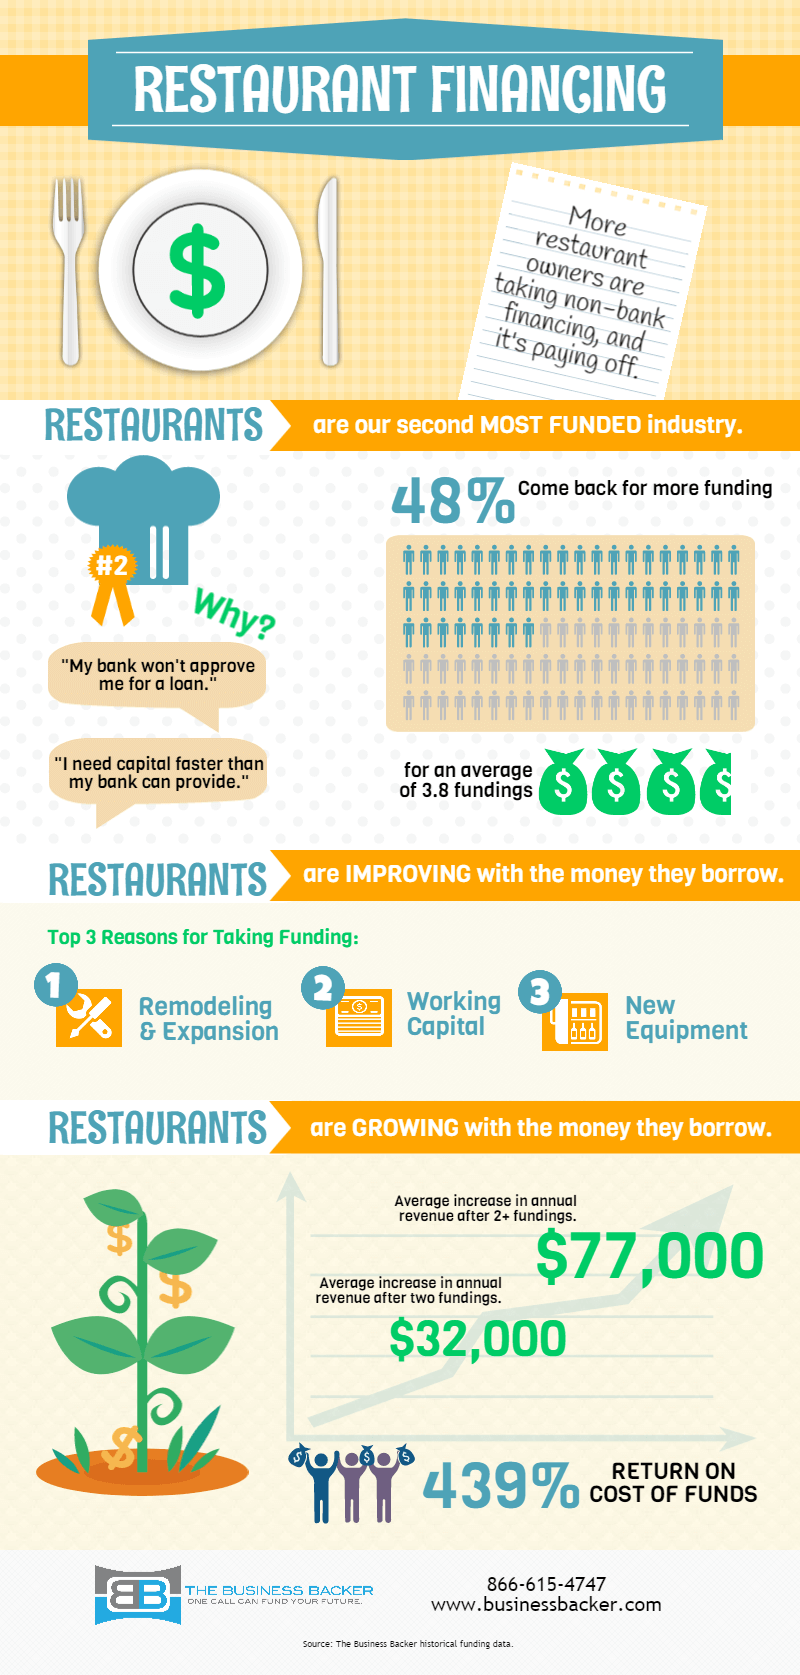 Restaurant Infographic by The Business Backer